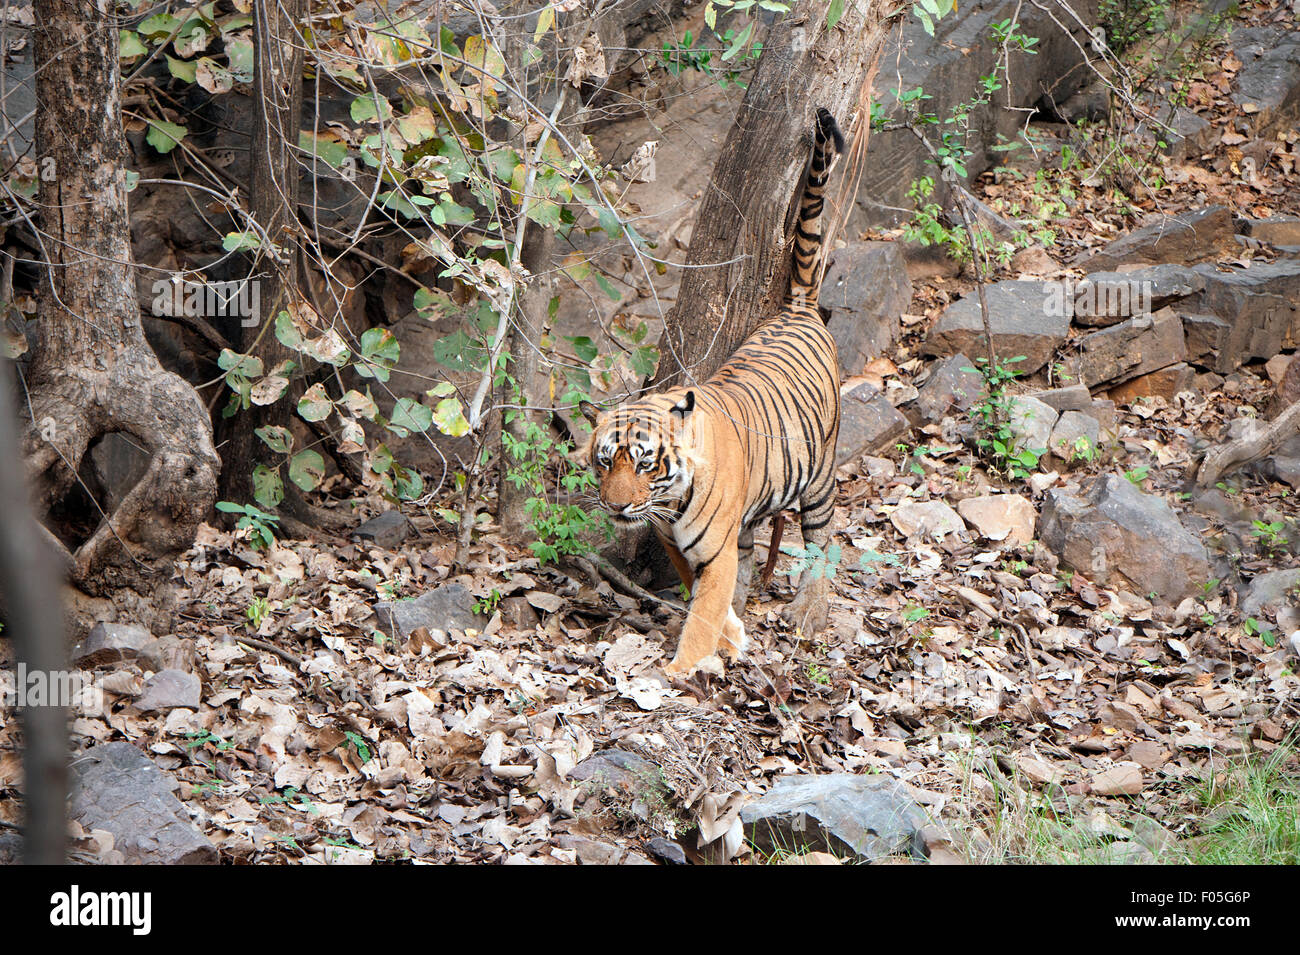 The was taken in Ranthambore national park -India - Stock Image